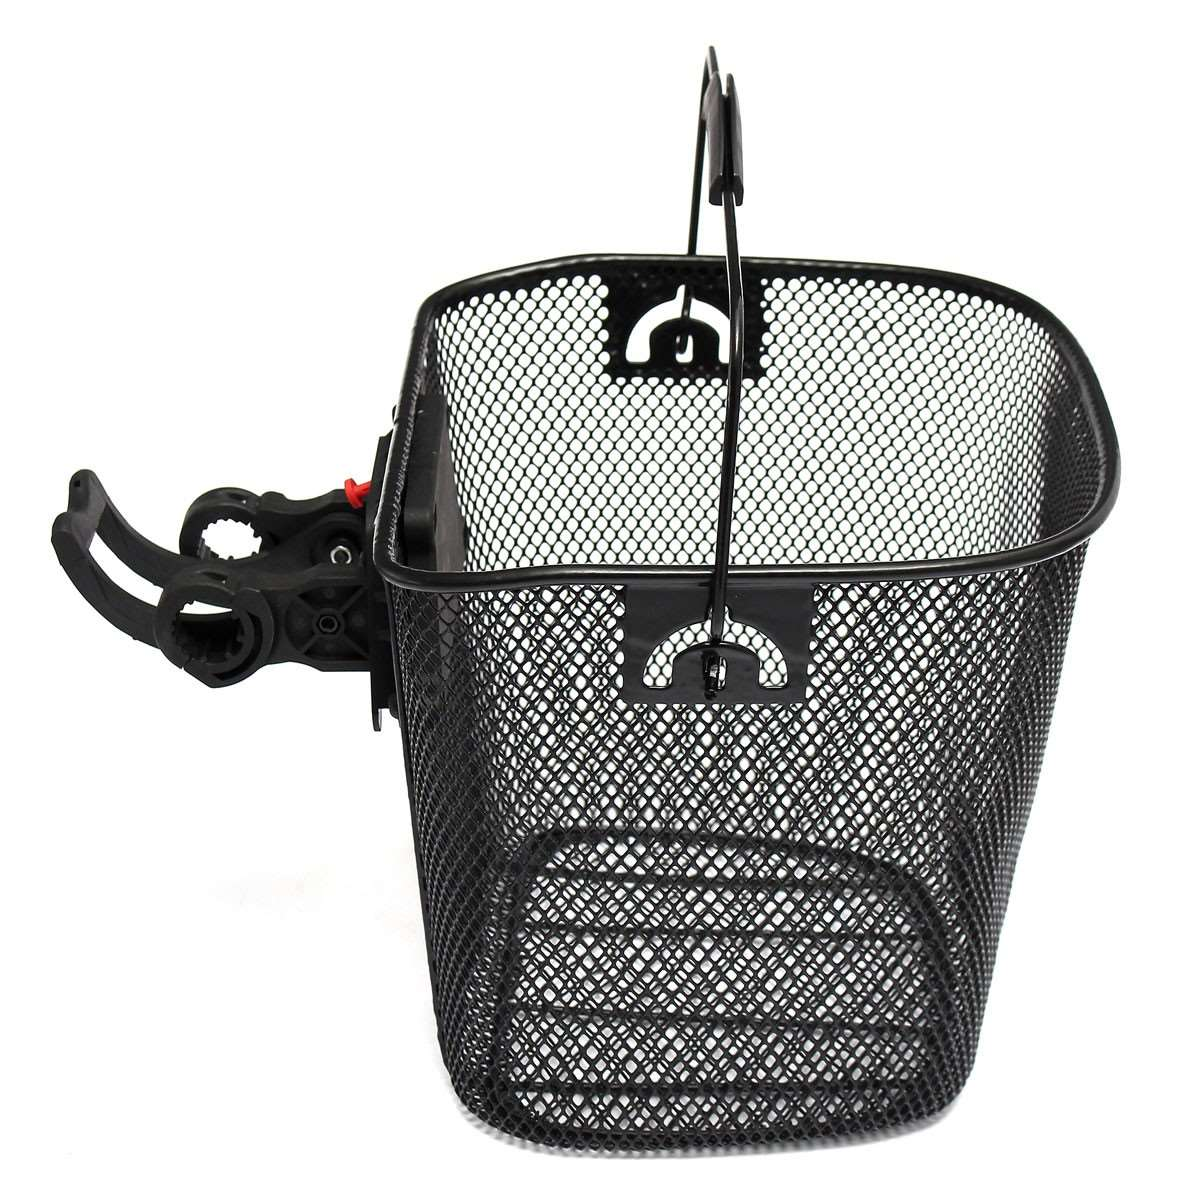 Metal Mesh Basket for MTB Mountain Bike Cycling Bicycle Front Foldable Basket Riding Rear Pannier Quick Release Shopping Handle ...